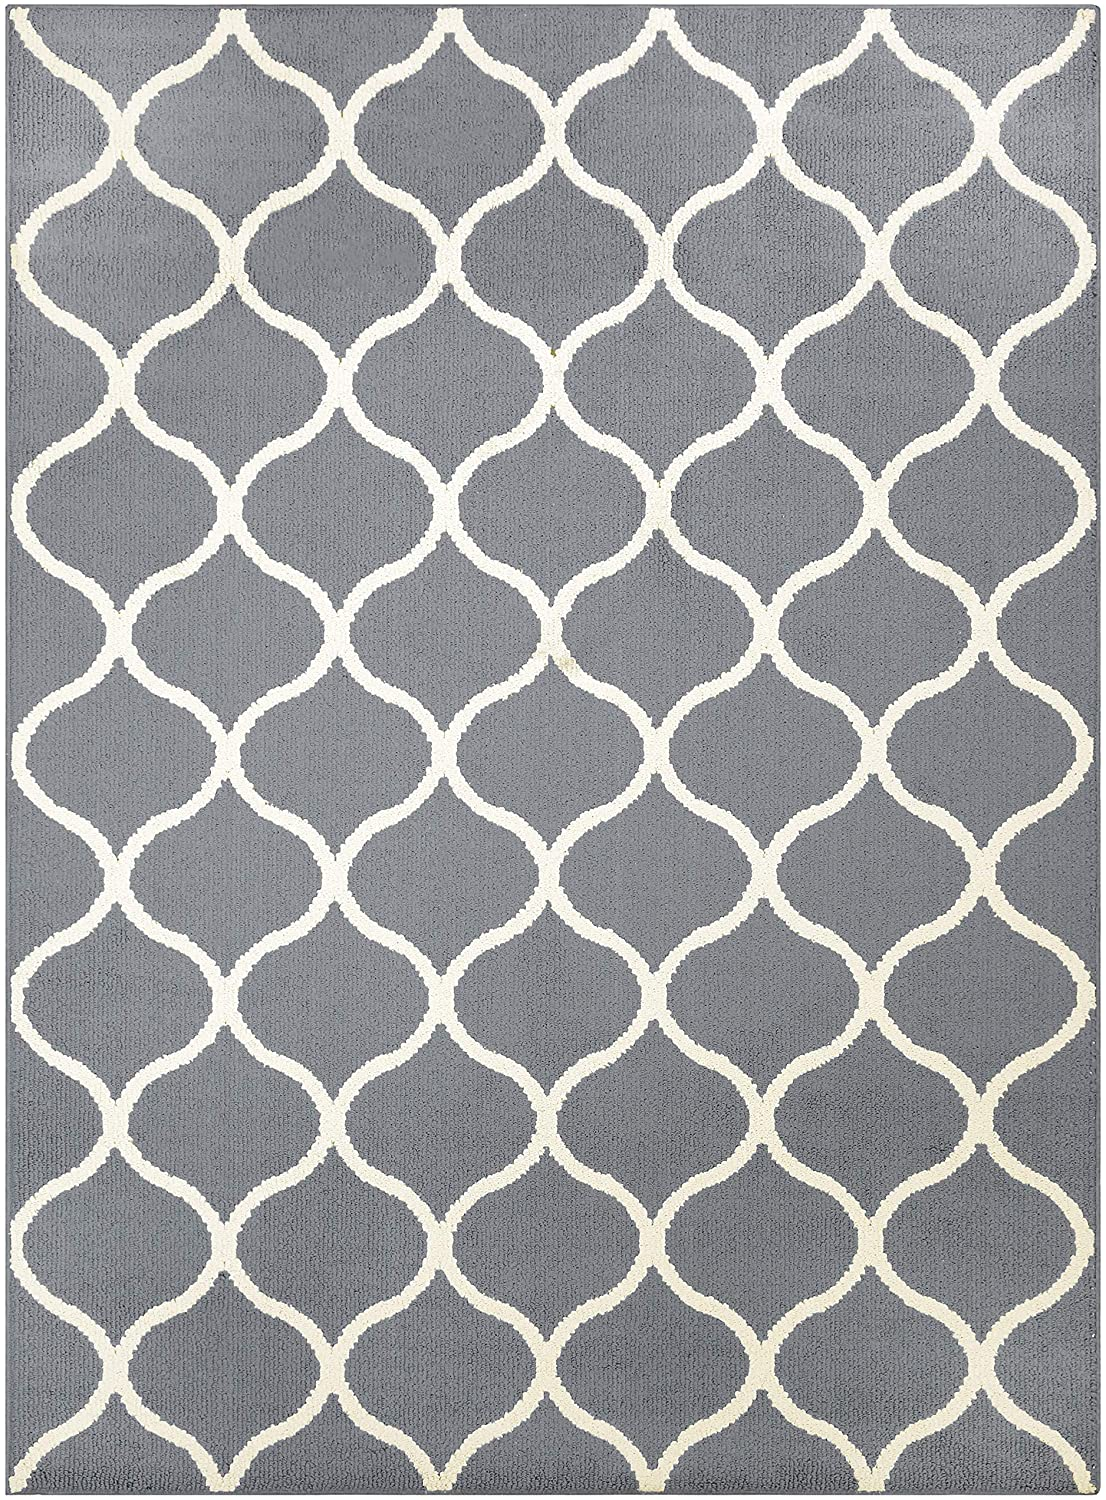 Maples Rugs Rebecca Same day shipping Contemporary Area Room Bed Living Kansas City Mall for